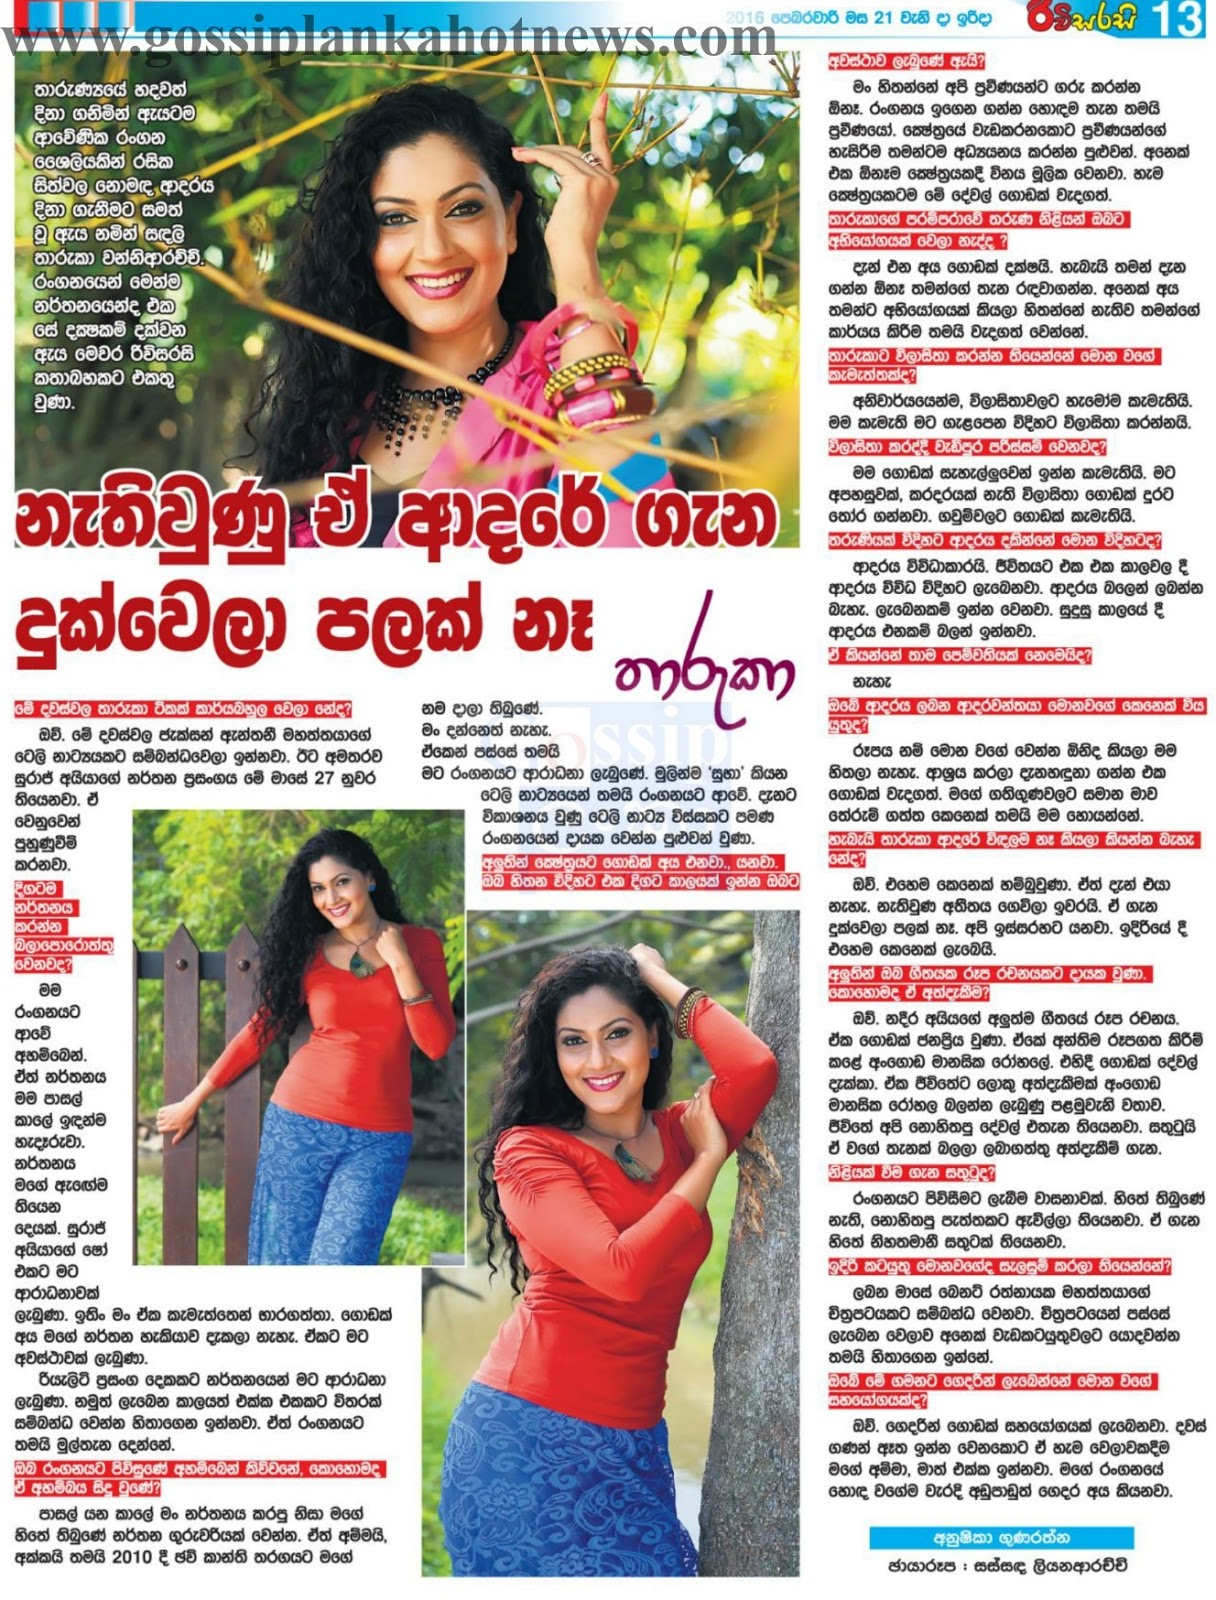 Interview with Tharuka Wanniarachchi ...